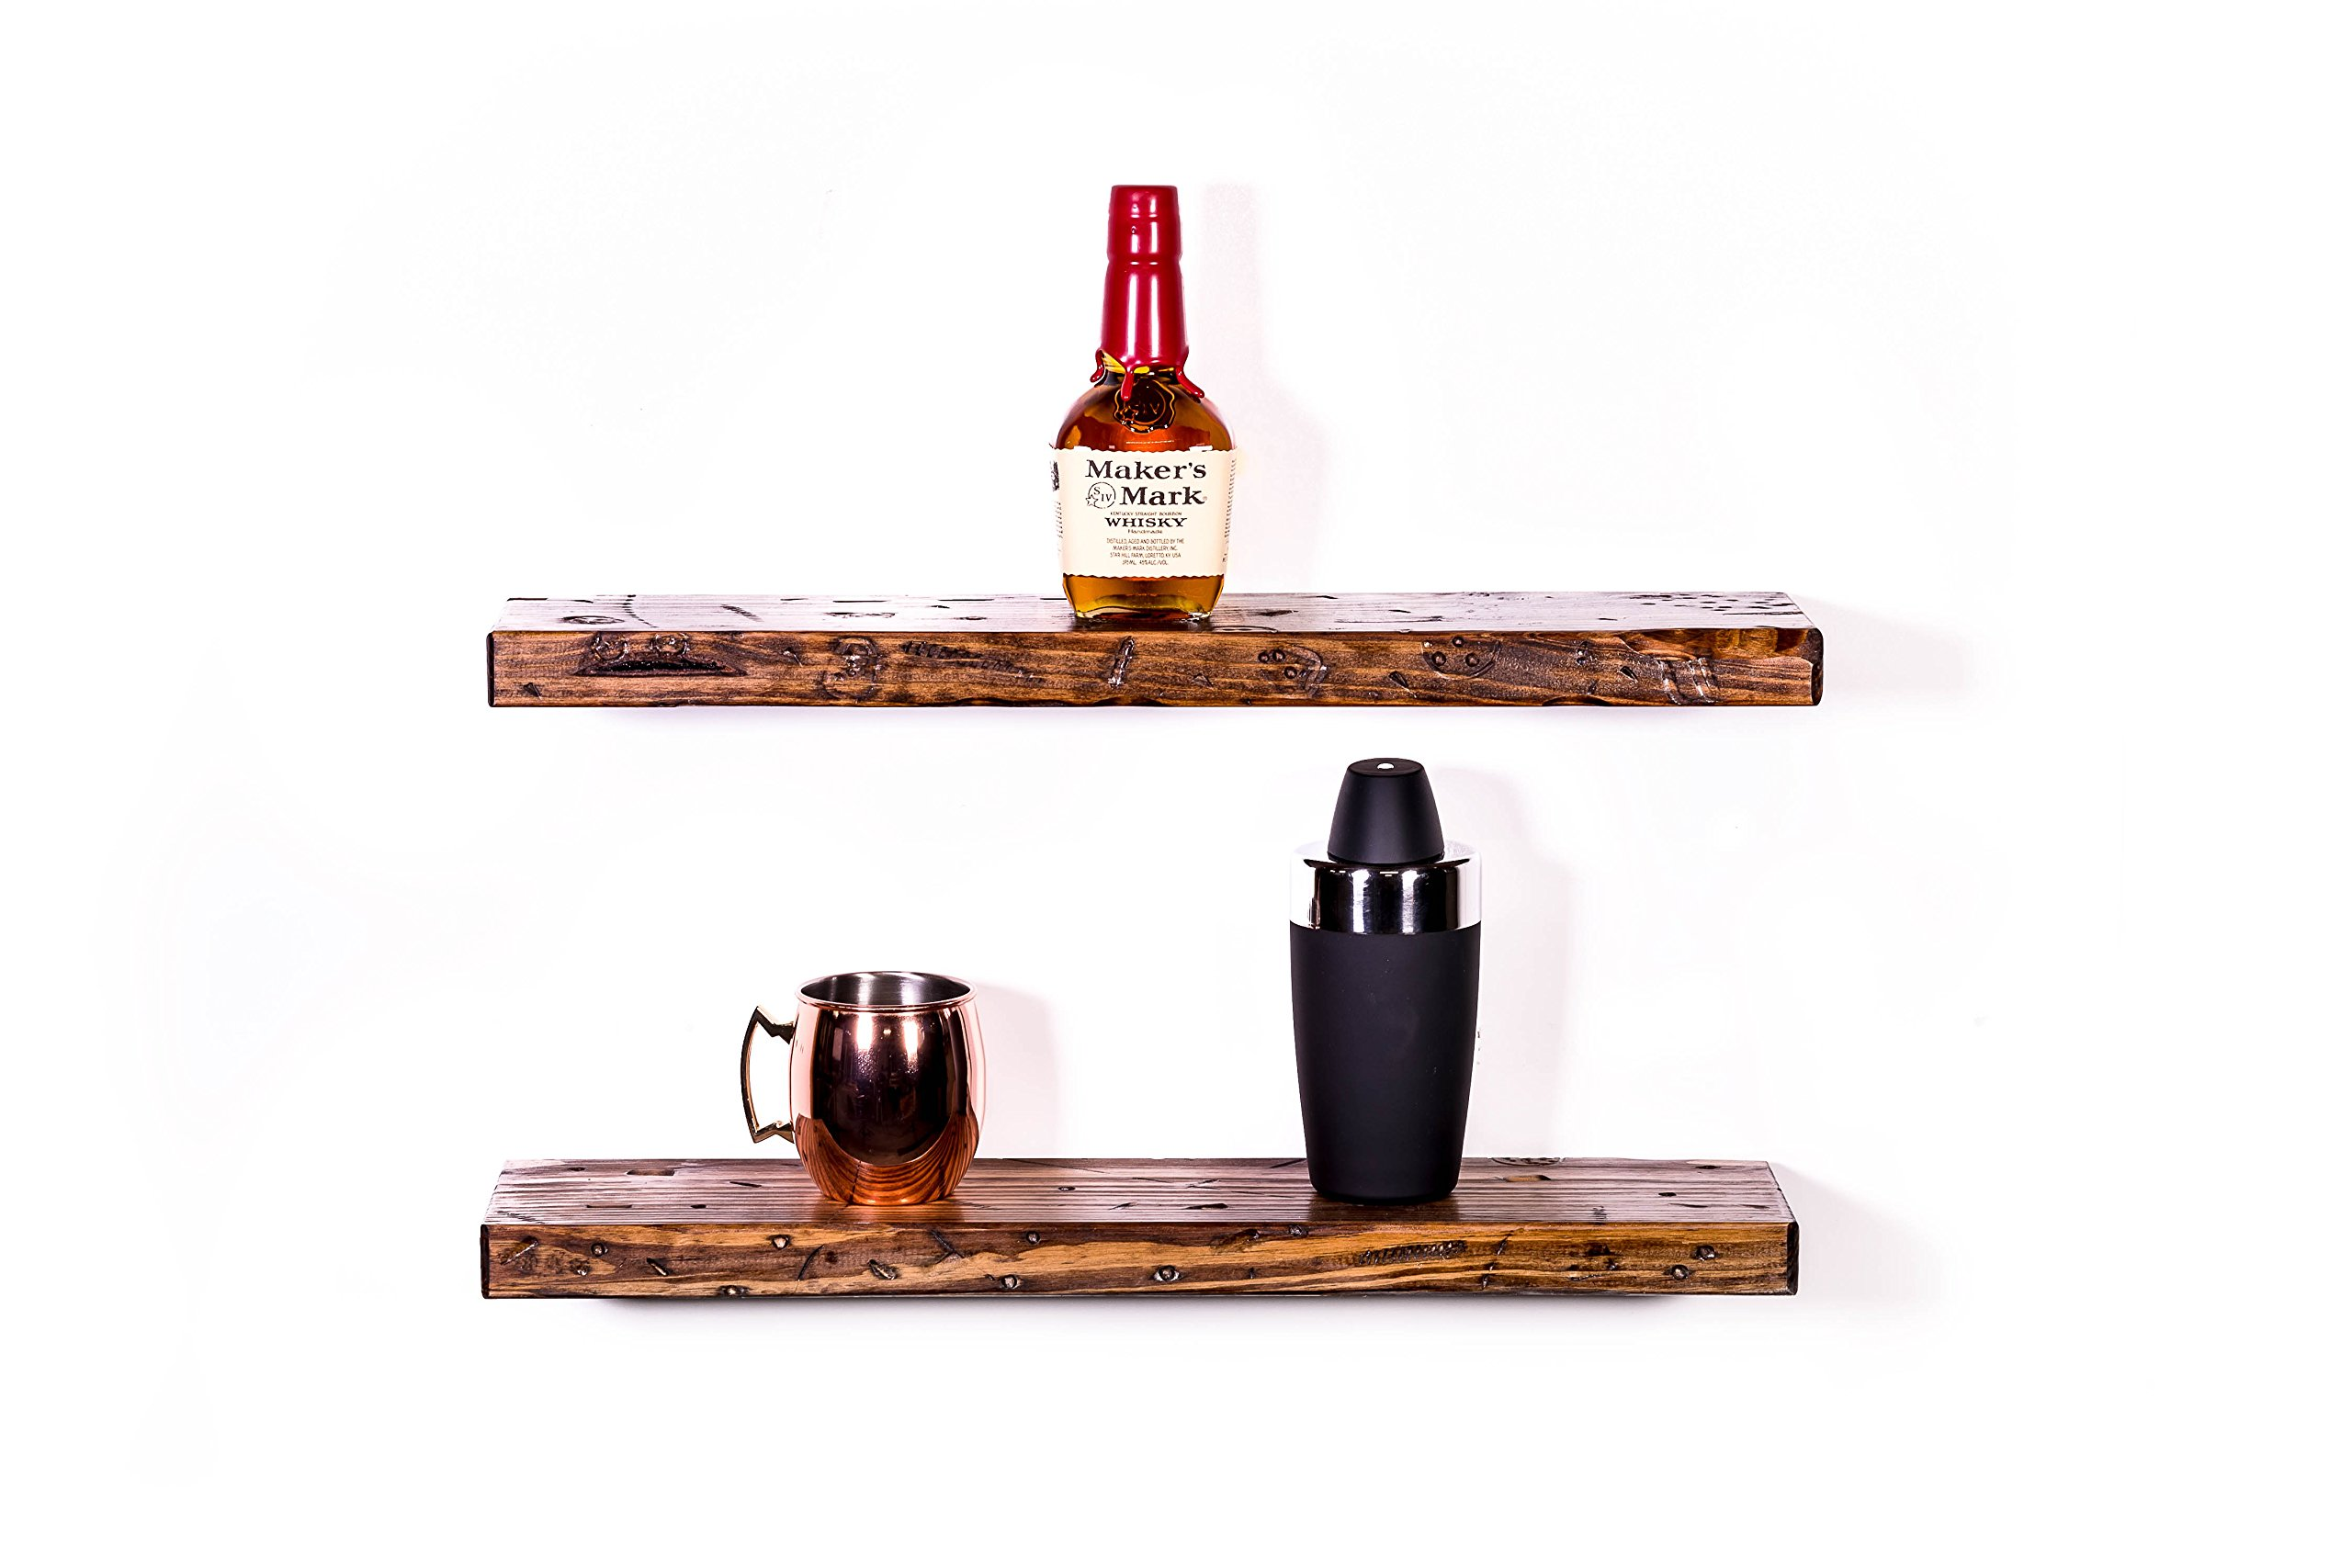 DAKODA LOVE 5.25'' Deep Rugged Distressed Floating Shelves, USA Handmade, Clear Coat Finish, 100% Countersunk Hidden Floating Shelf Brackets, Beautiful Grain Pine Wood Rustic (Set of 2) (24'', Bourbon)